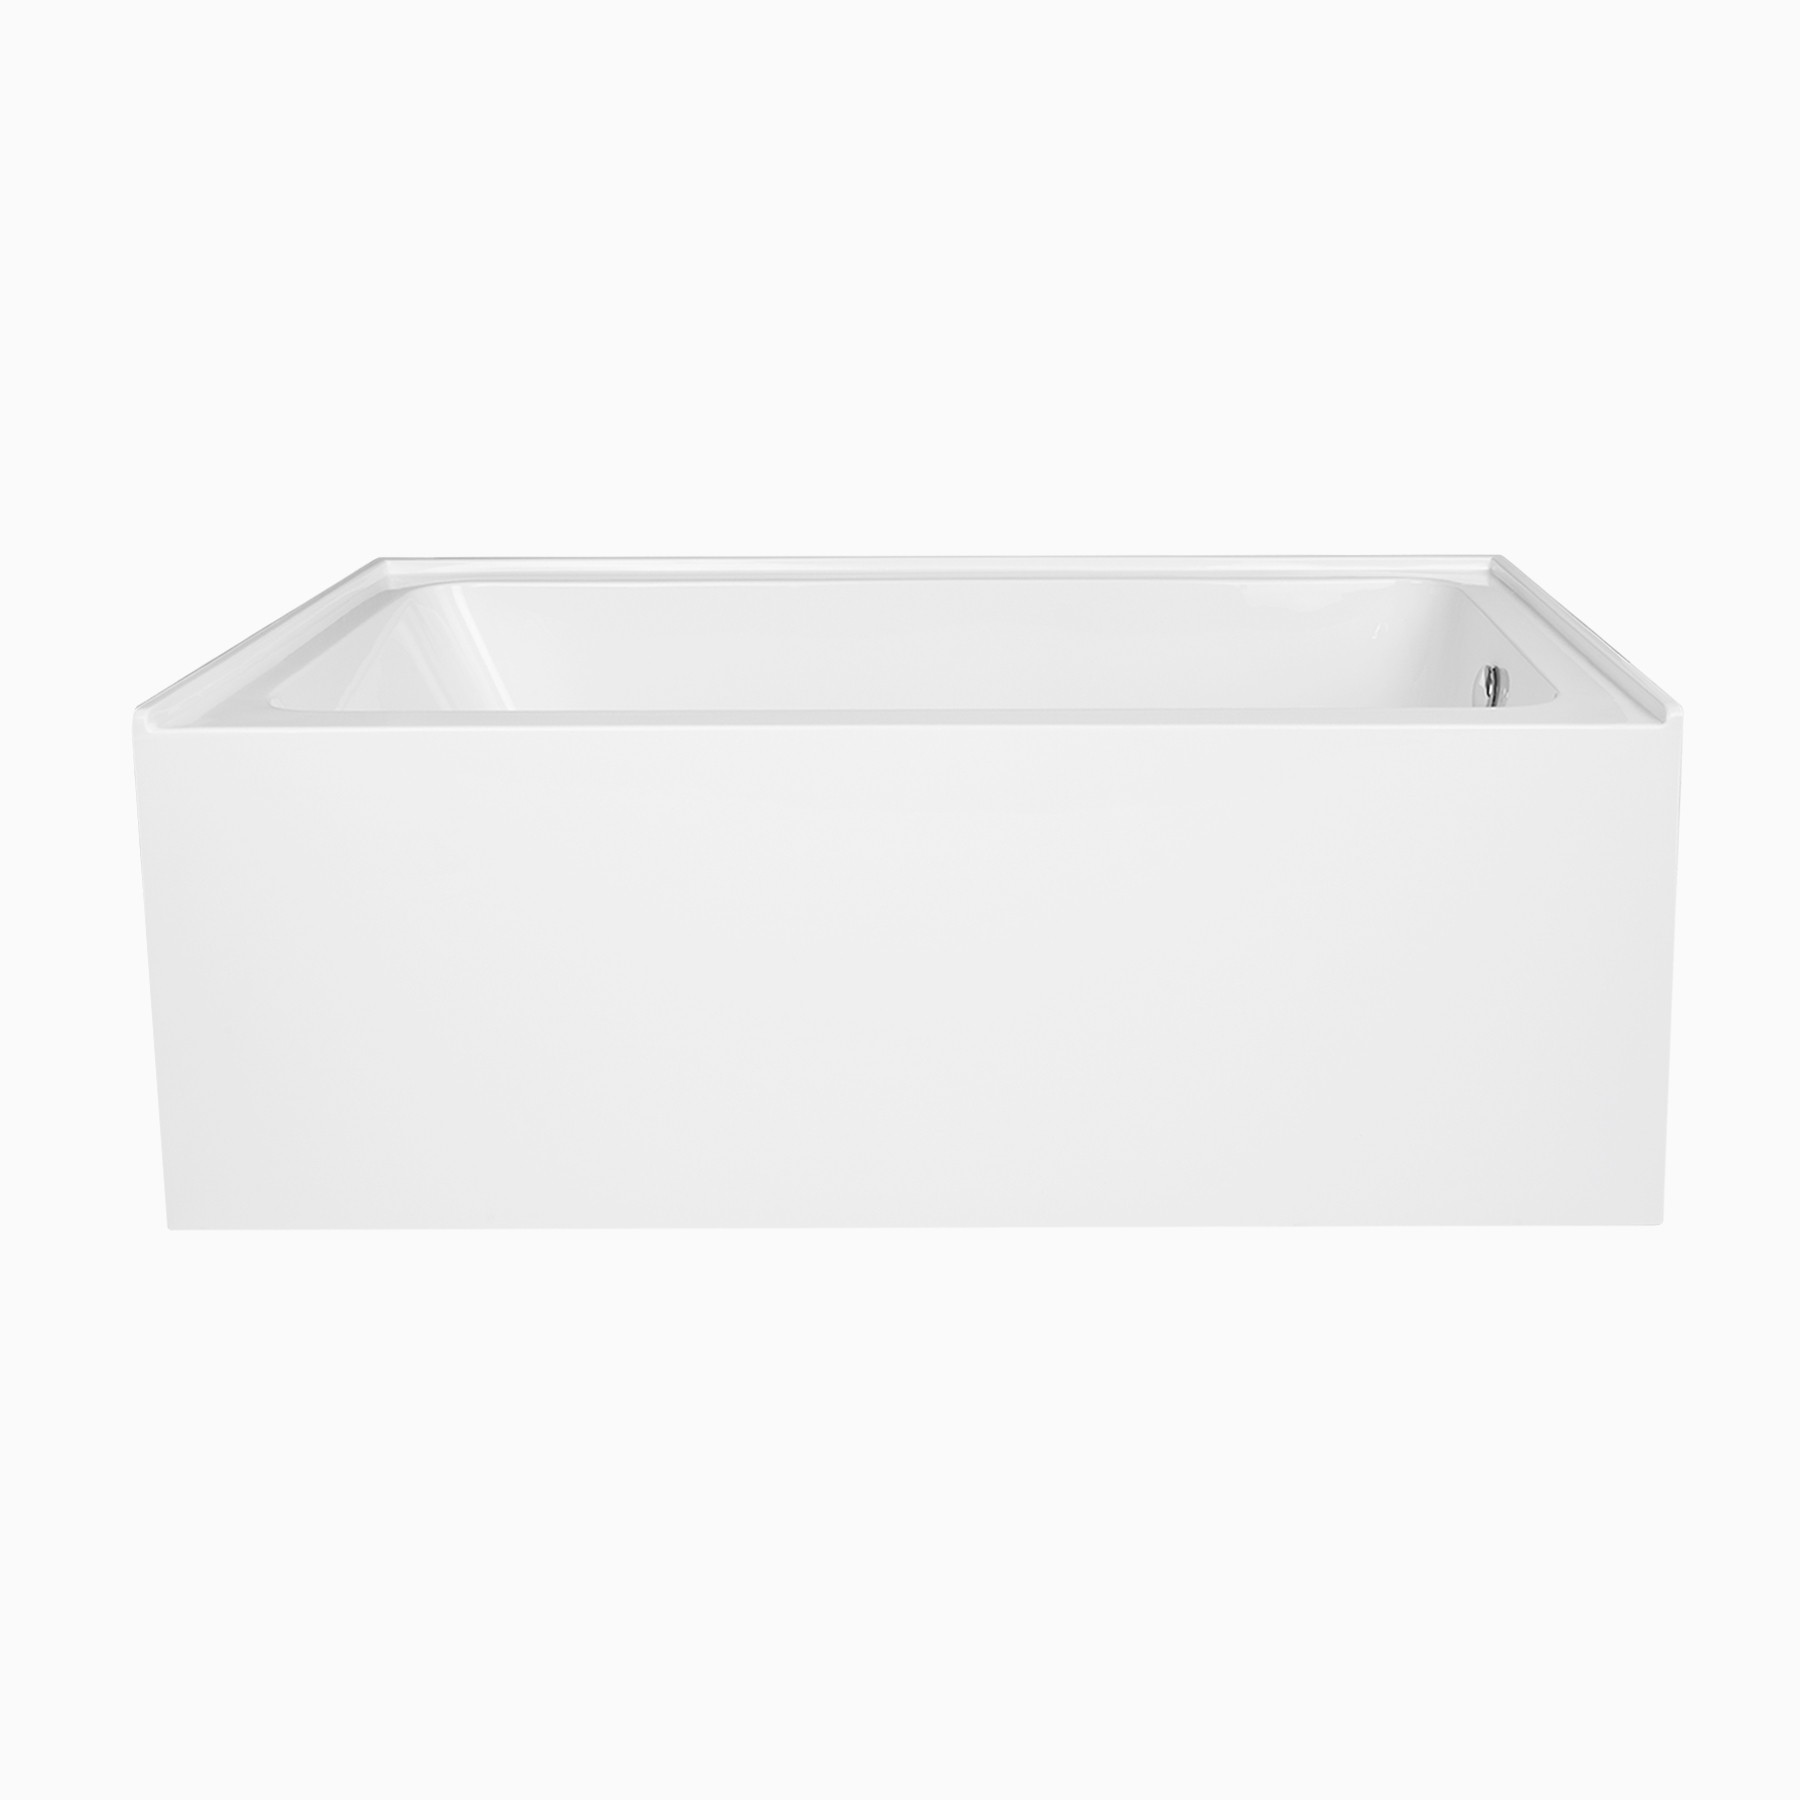 60 pensacola acrylic alcove bathtub modern rectangle tub for Alcove bathtub dimensions